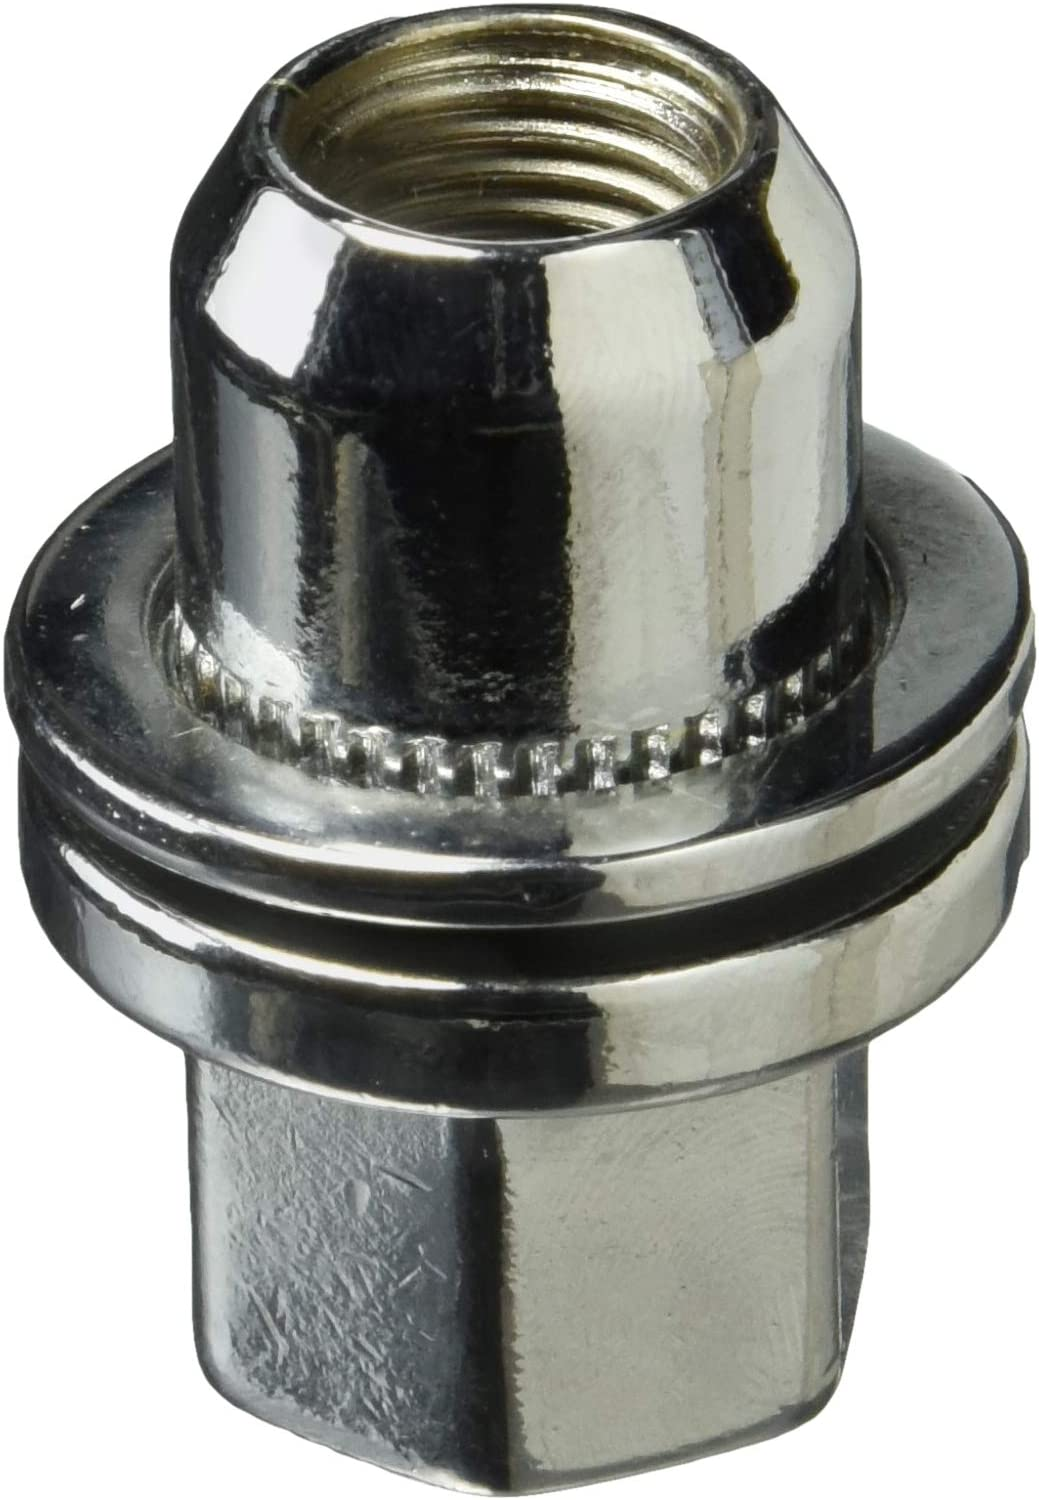 White Knight 5309RR-4 Chrome Lug Nut with Washer for Range Rover - 4 Piece